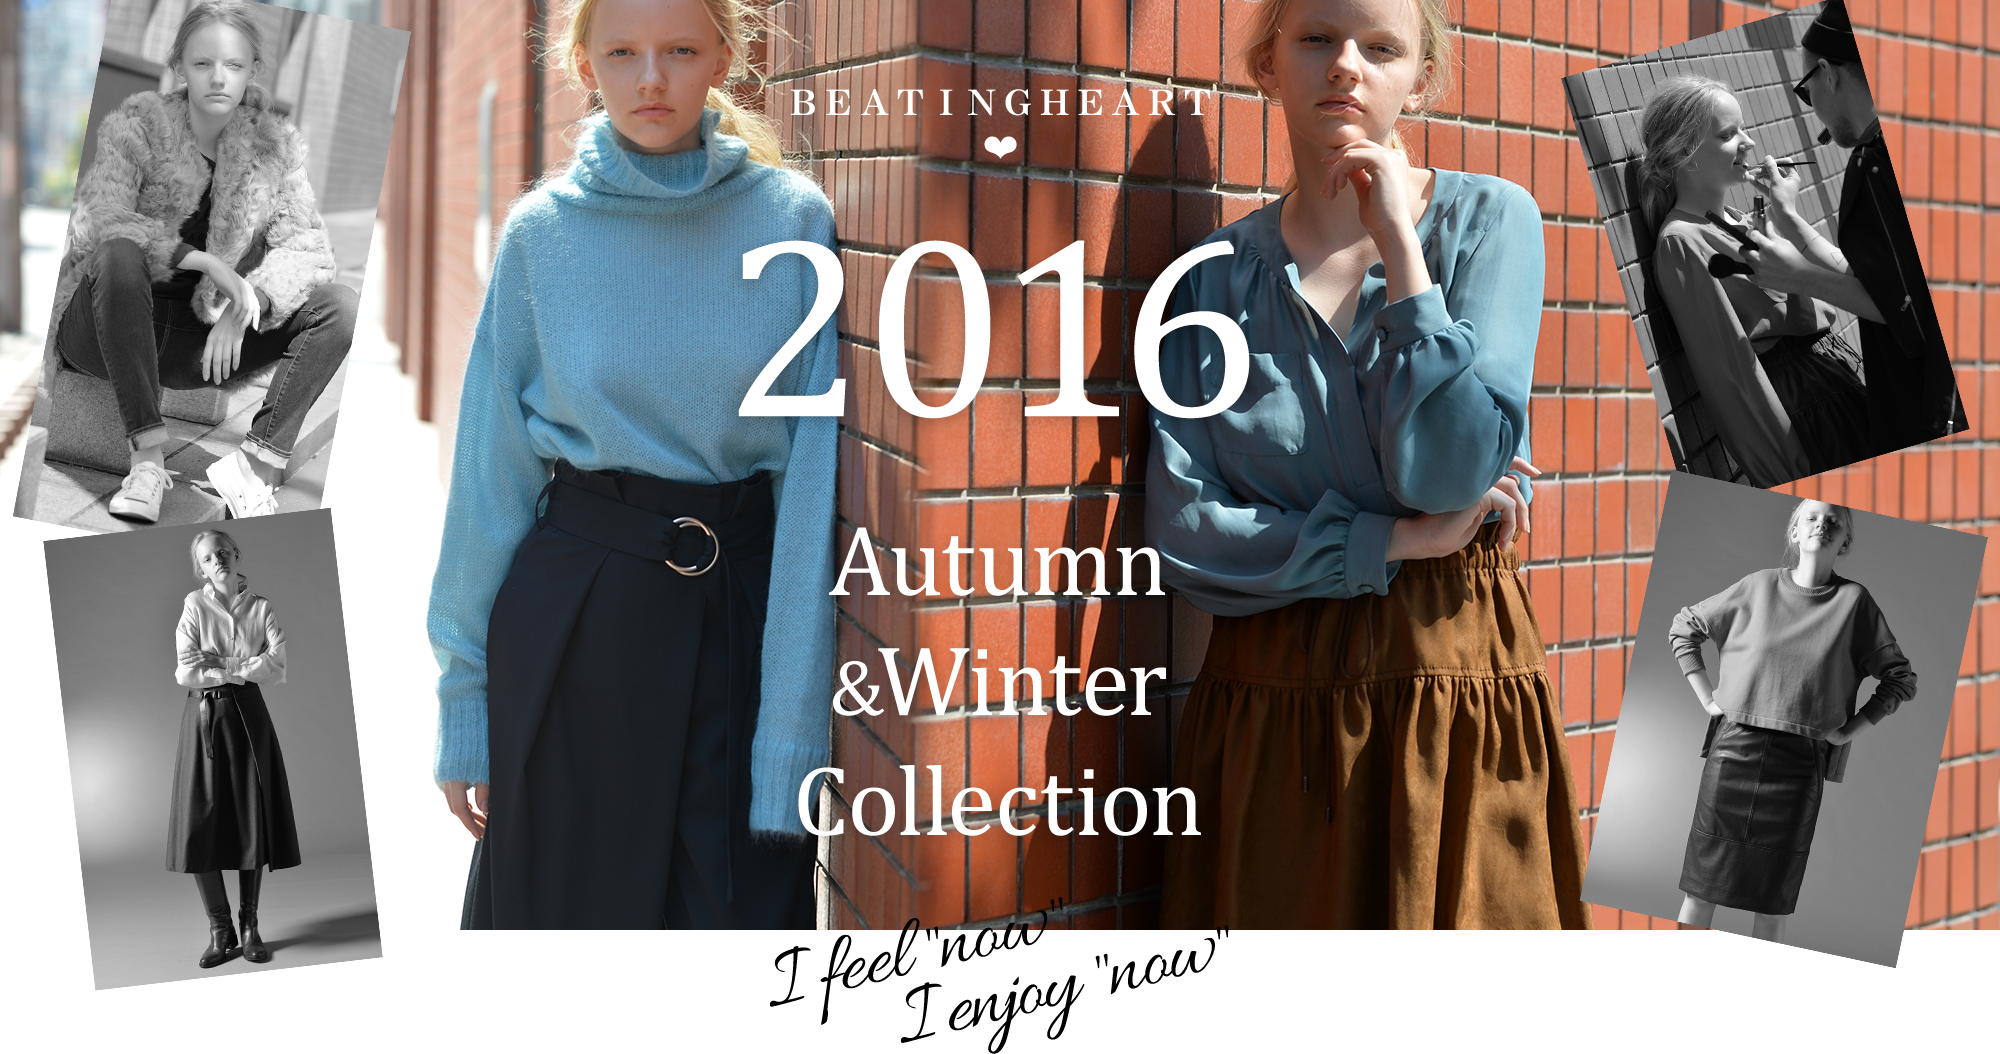 BEATING HEART 2016 Autumn&Winter Collection